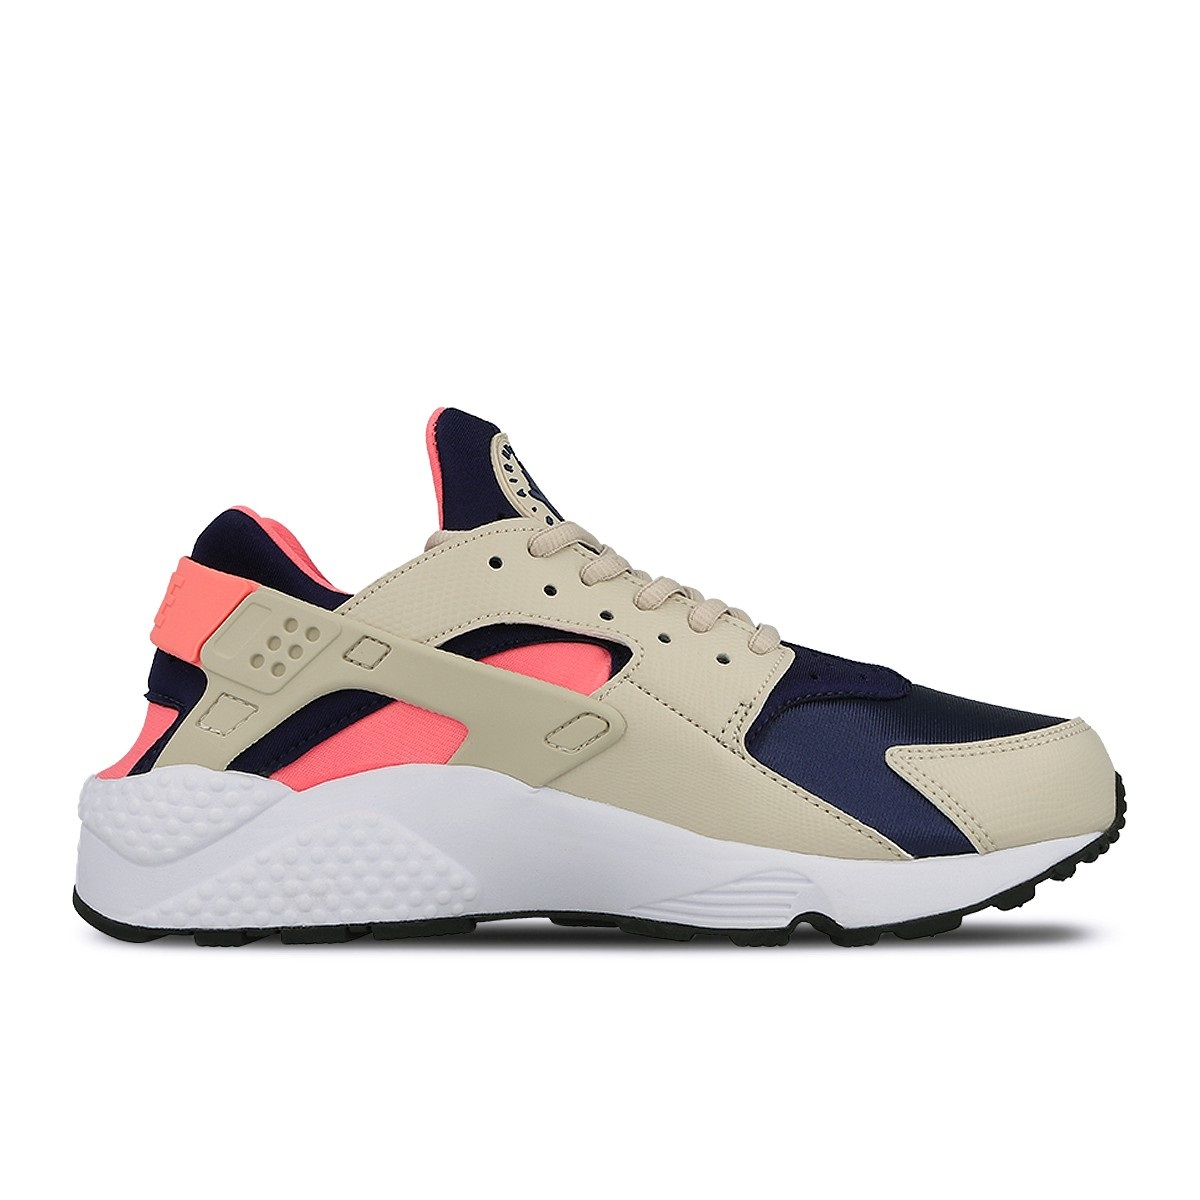 Nike Air Huarache Run Women's